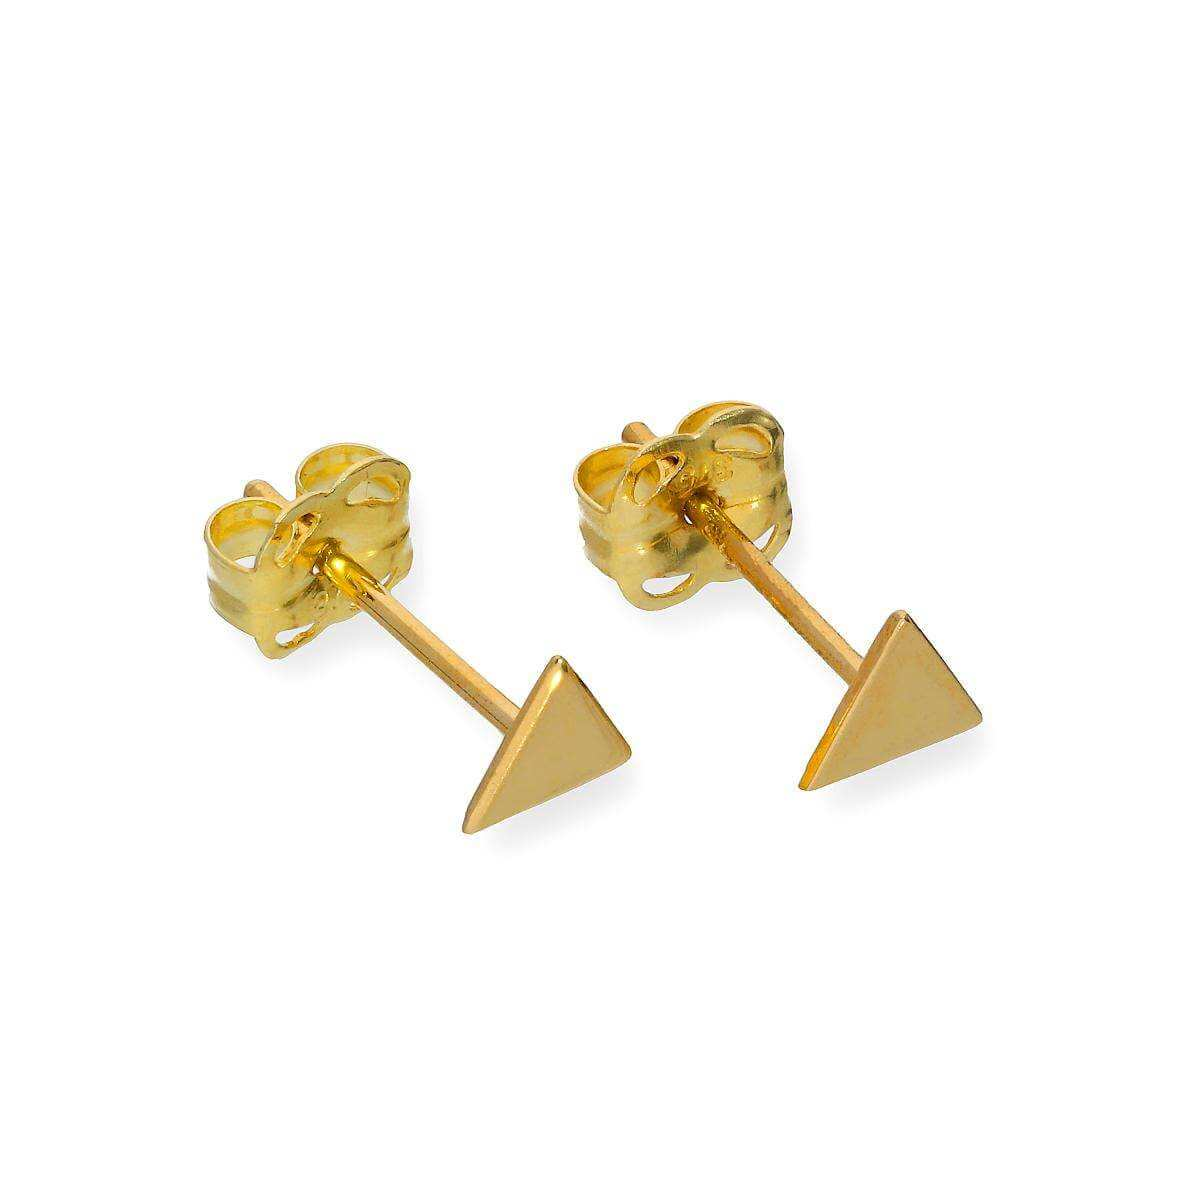 9ct Gold Small Triangle Stud Earrings